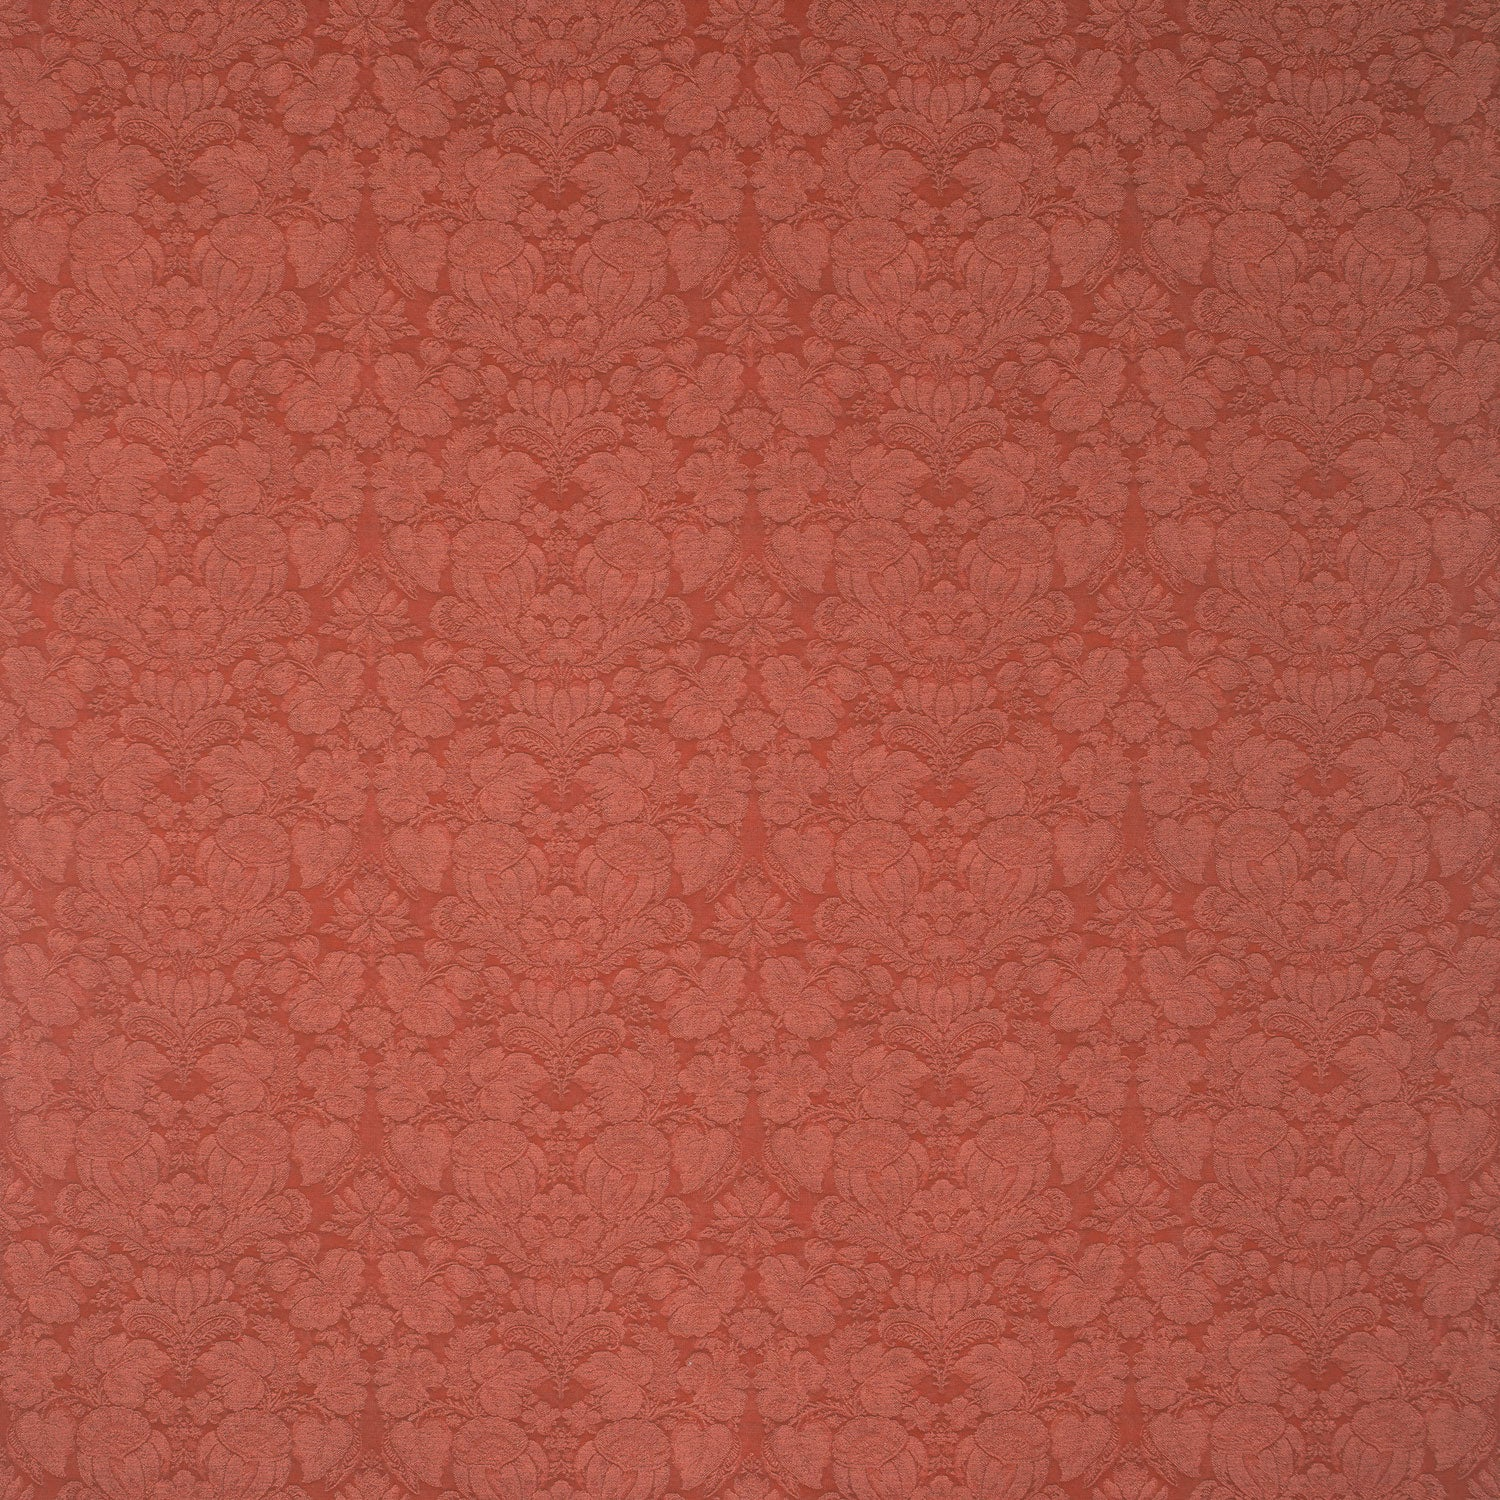 Sakura Damask Brick